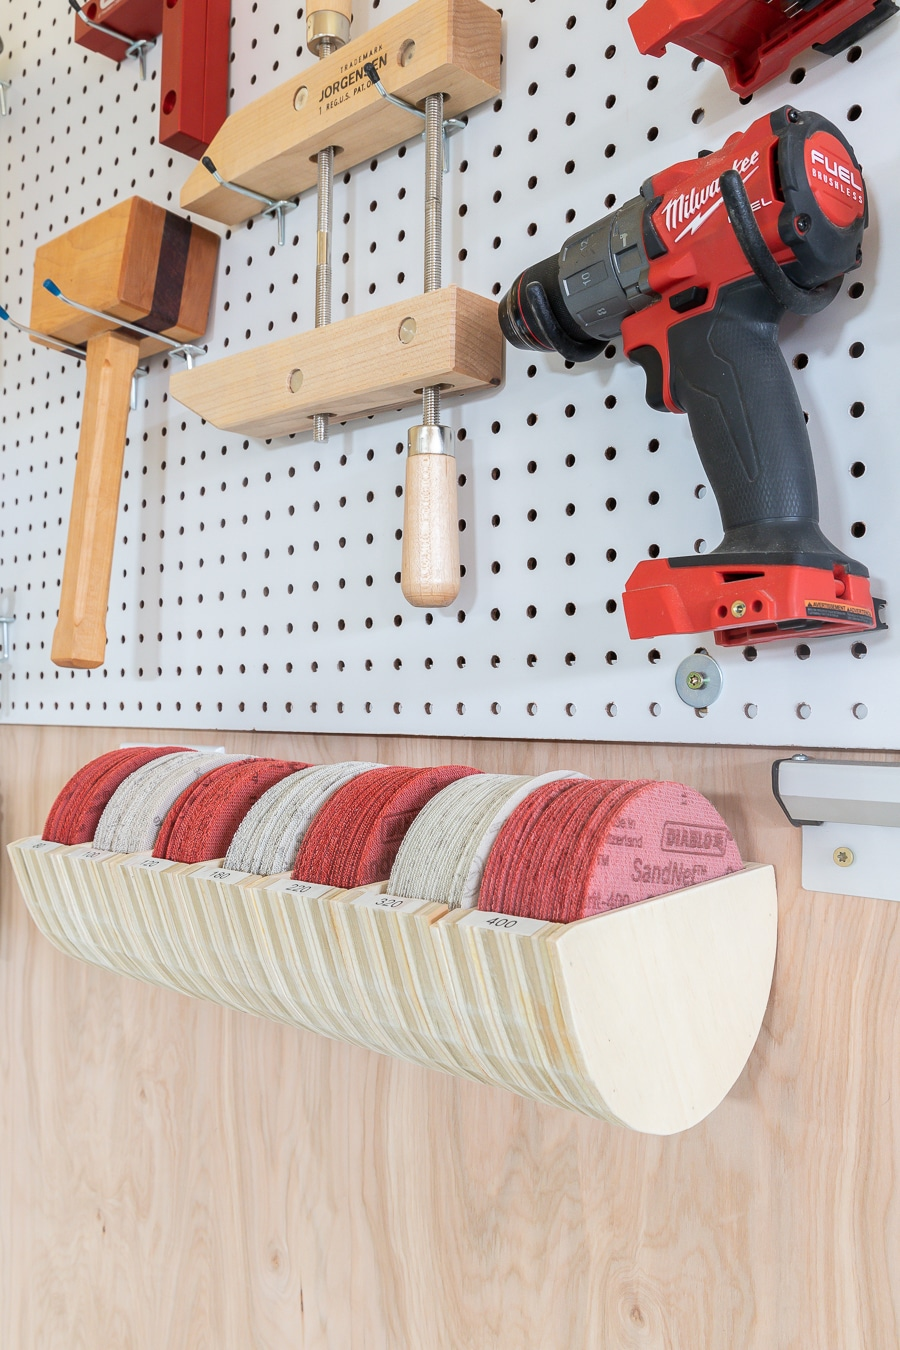 How to make a DIY sandpaper organizer from scrap wood